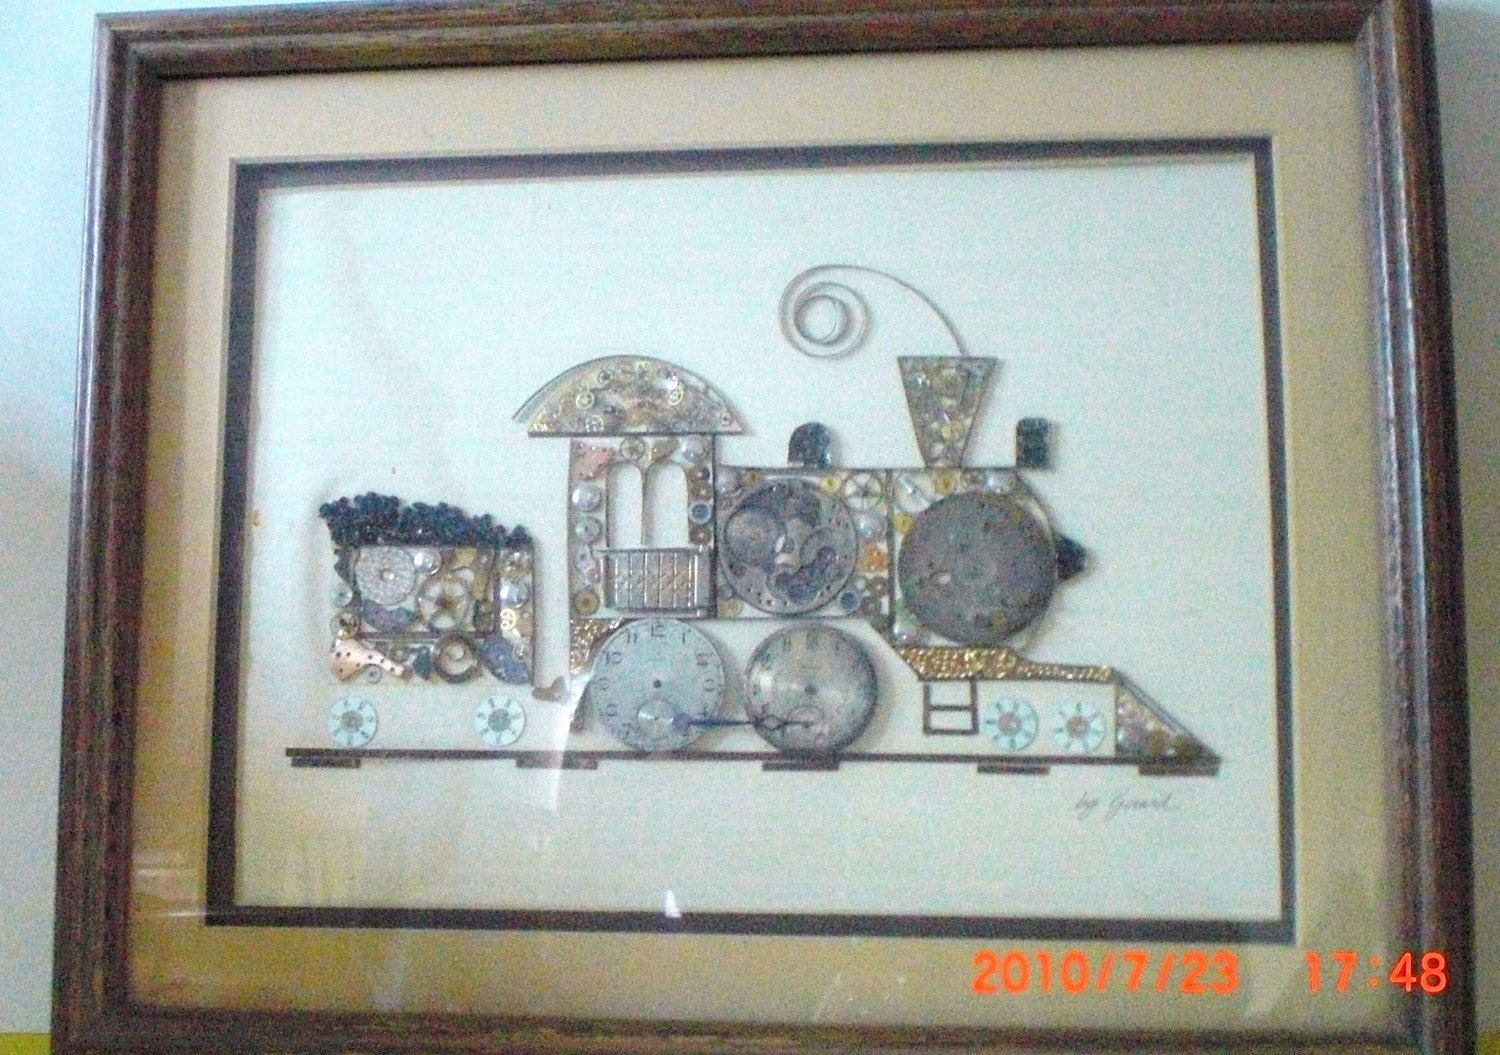 Girard's Watch Pictures & Picture Frames - 22444 Ford Rd ...